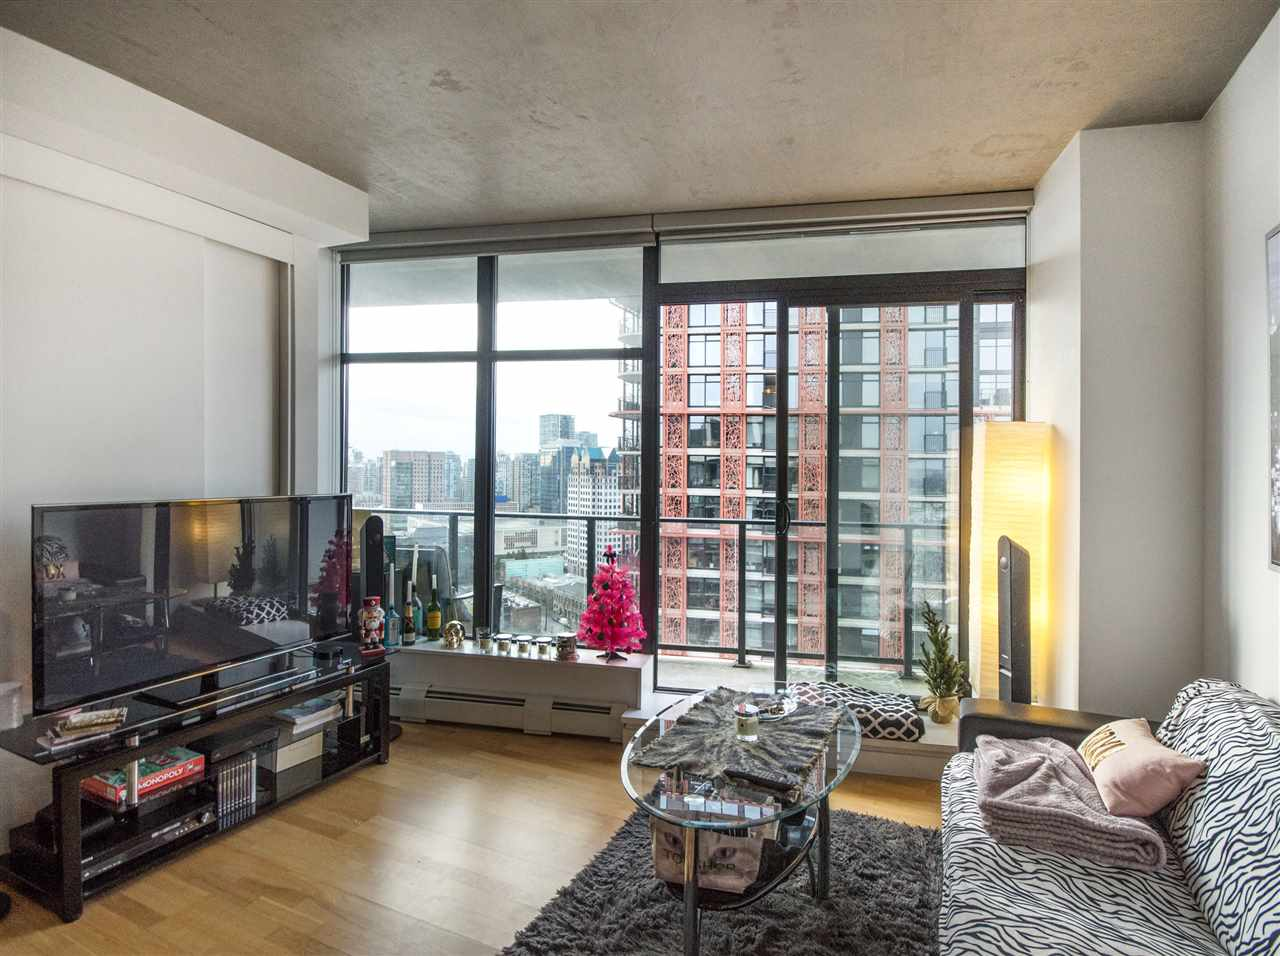 "Photo 3: PH8 108 W CORDOVA Street in Vancouver: Downtown VW Condo for sale in ""Woodwards W32"" (Vancouver West)  : MLS(r) # R2131580"